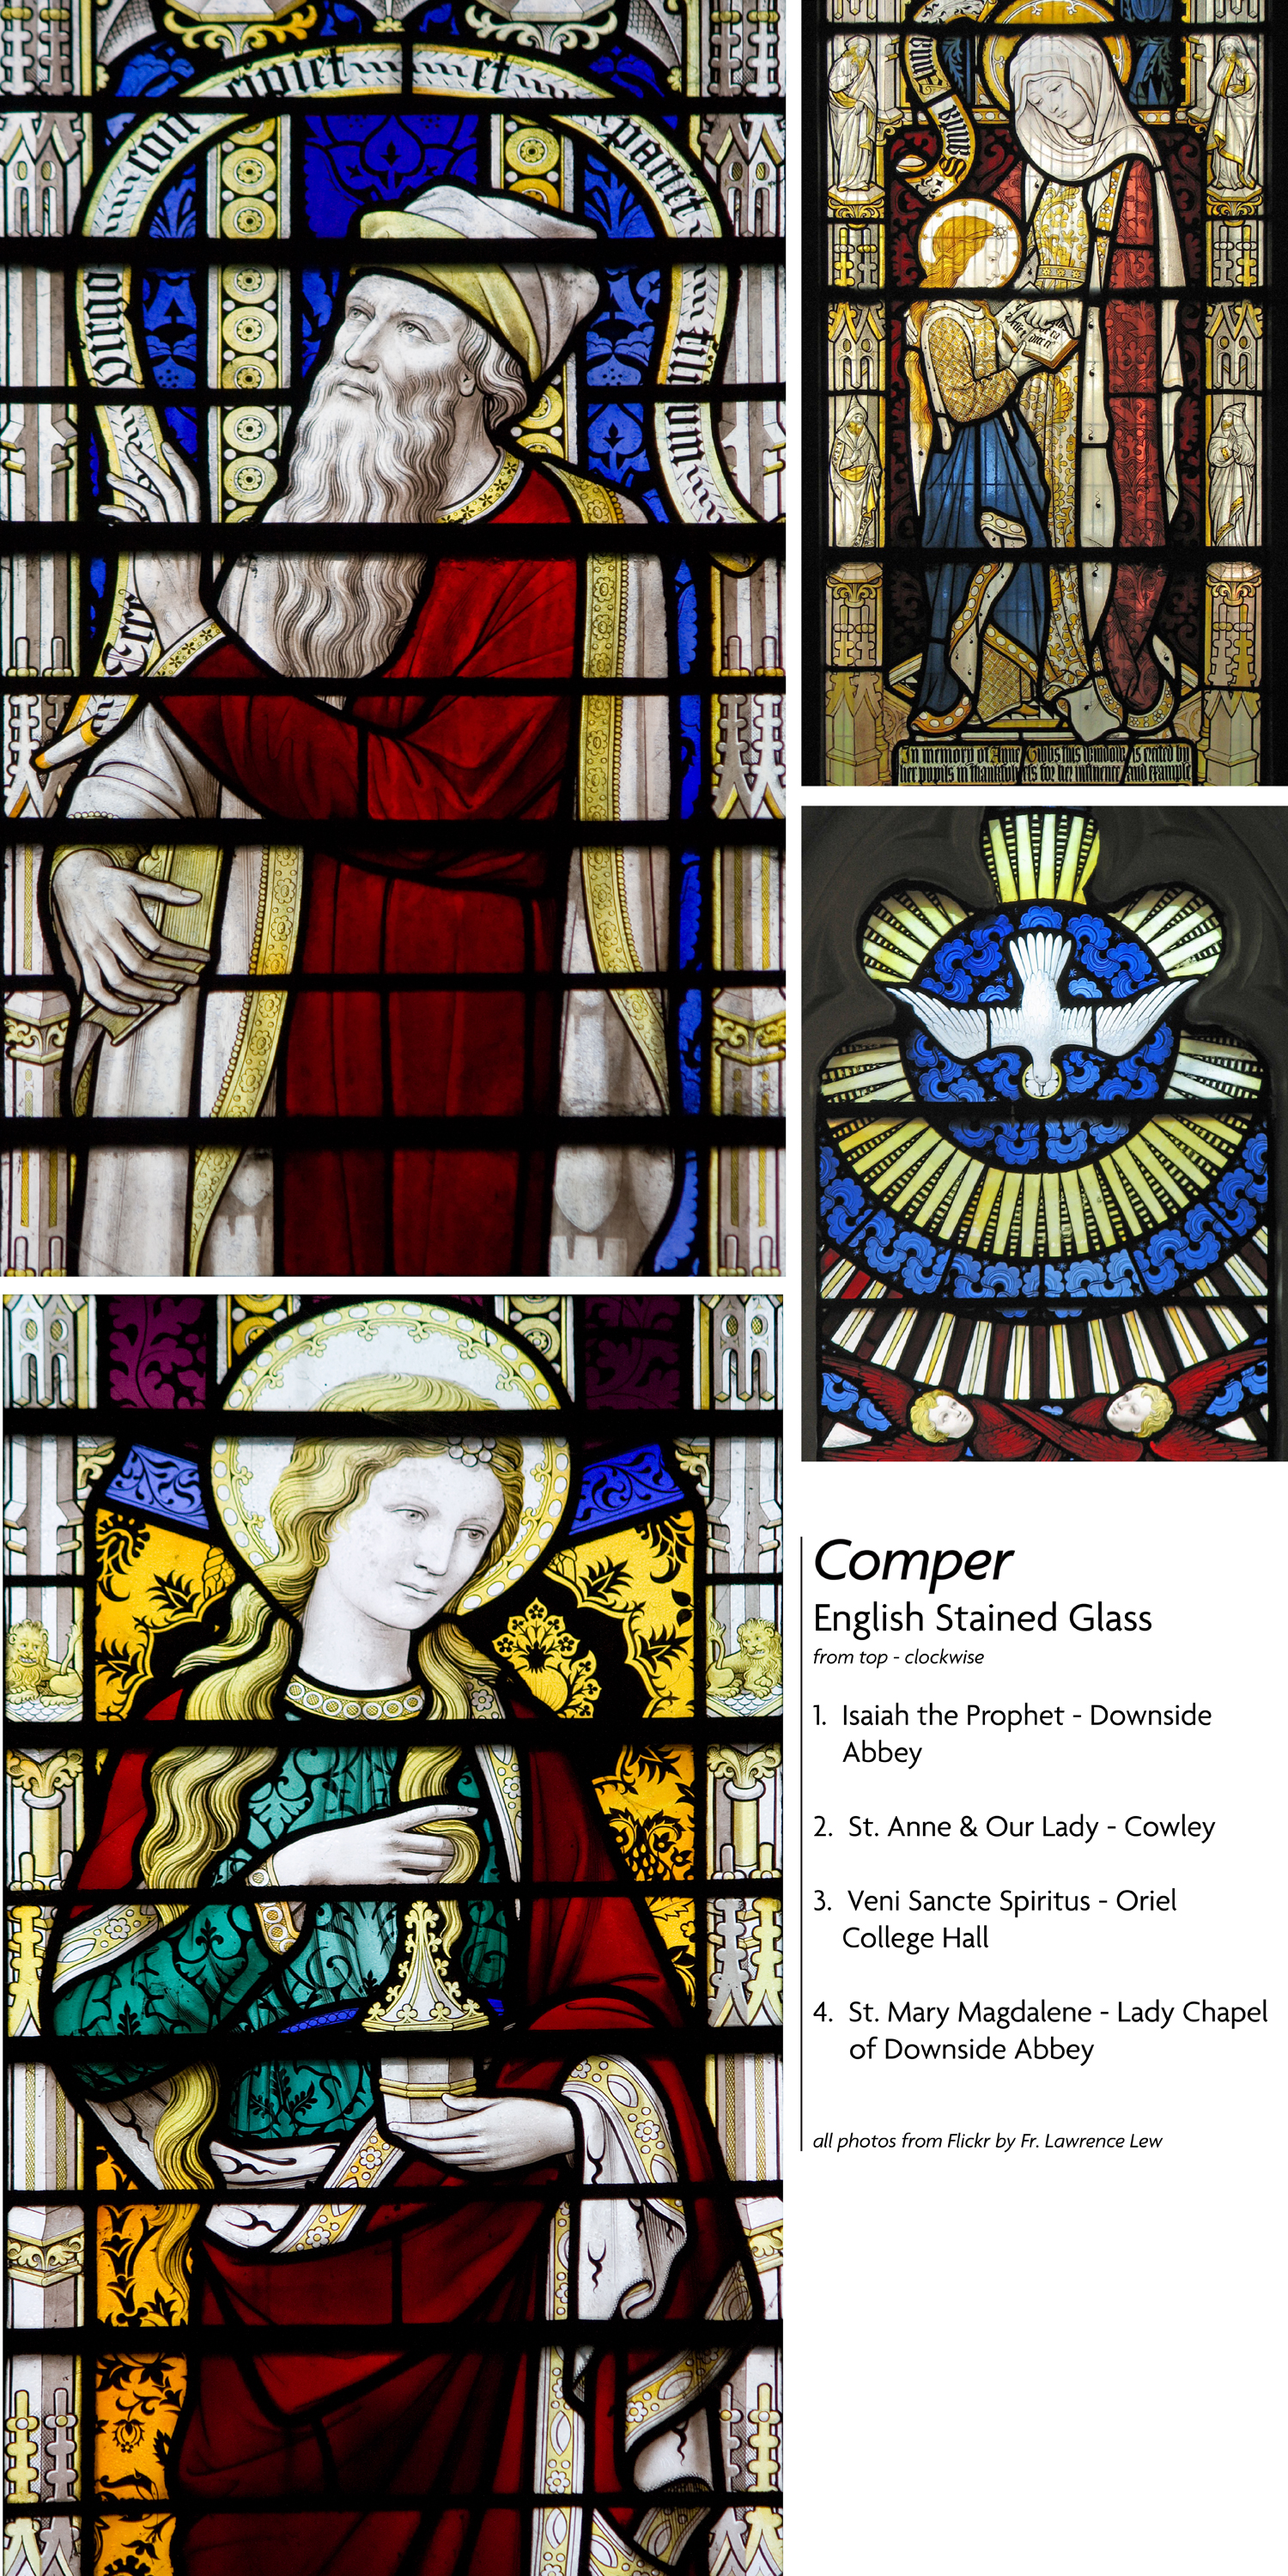 2013-05-03 Blog_Comper Stained Glass-01.jpg